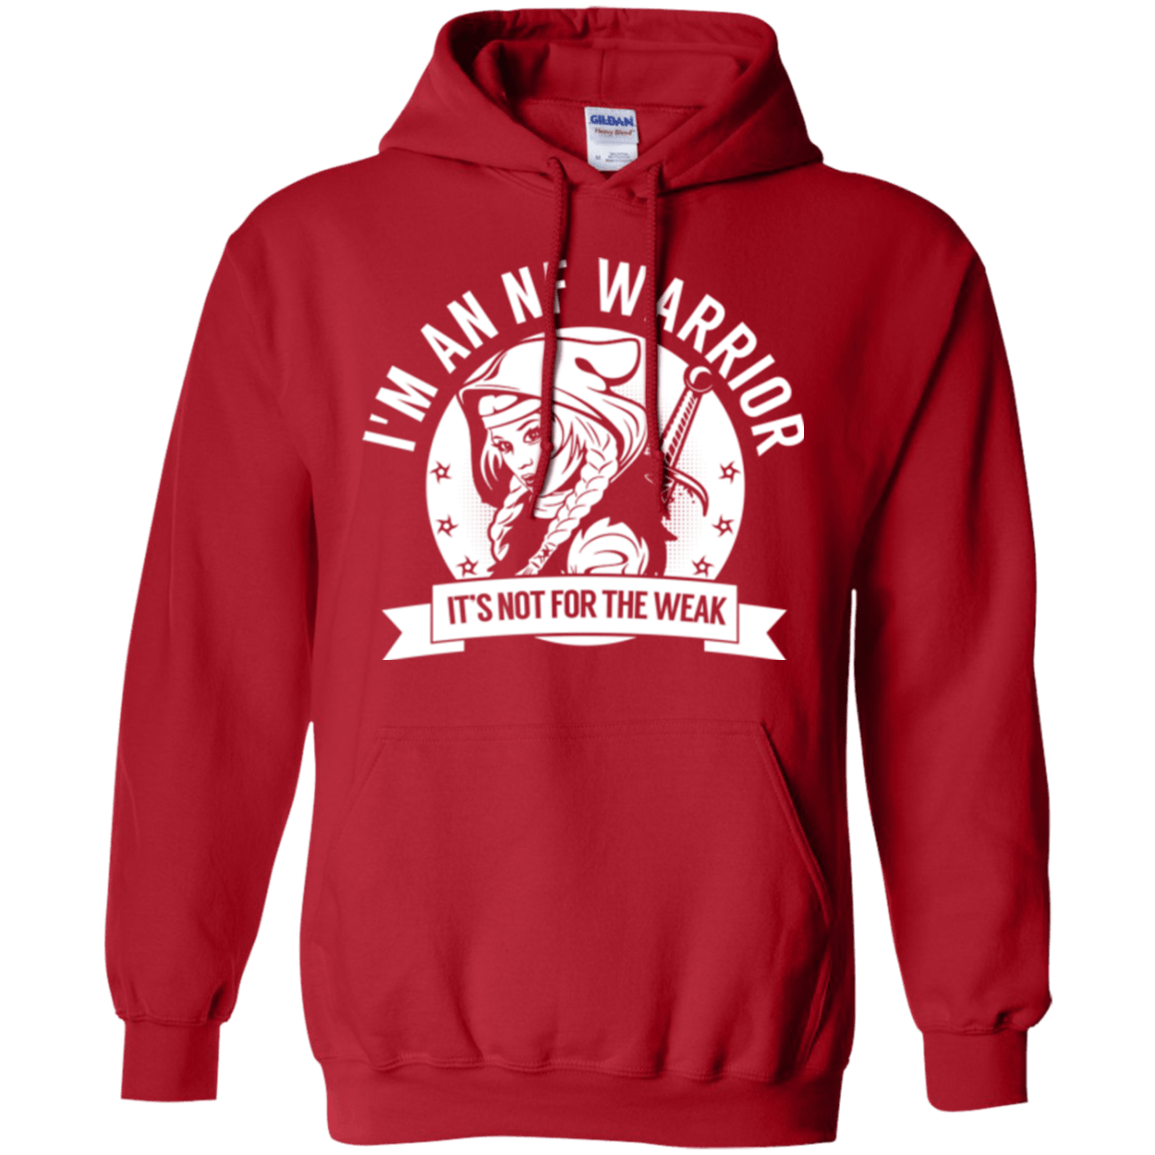 Neurofibromatosis - NF Warrior Hooded Pullover Hoodie 8 oz. - The Unchargeables